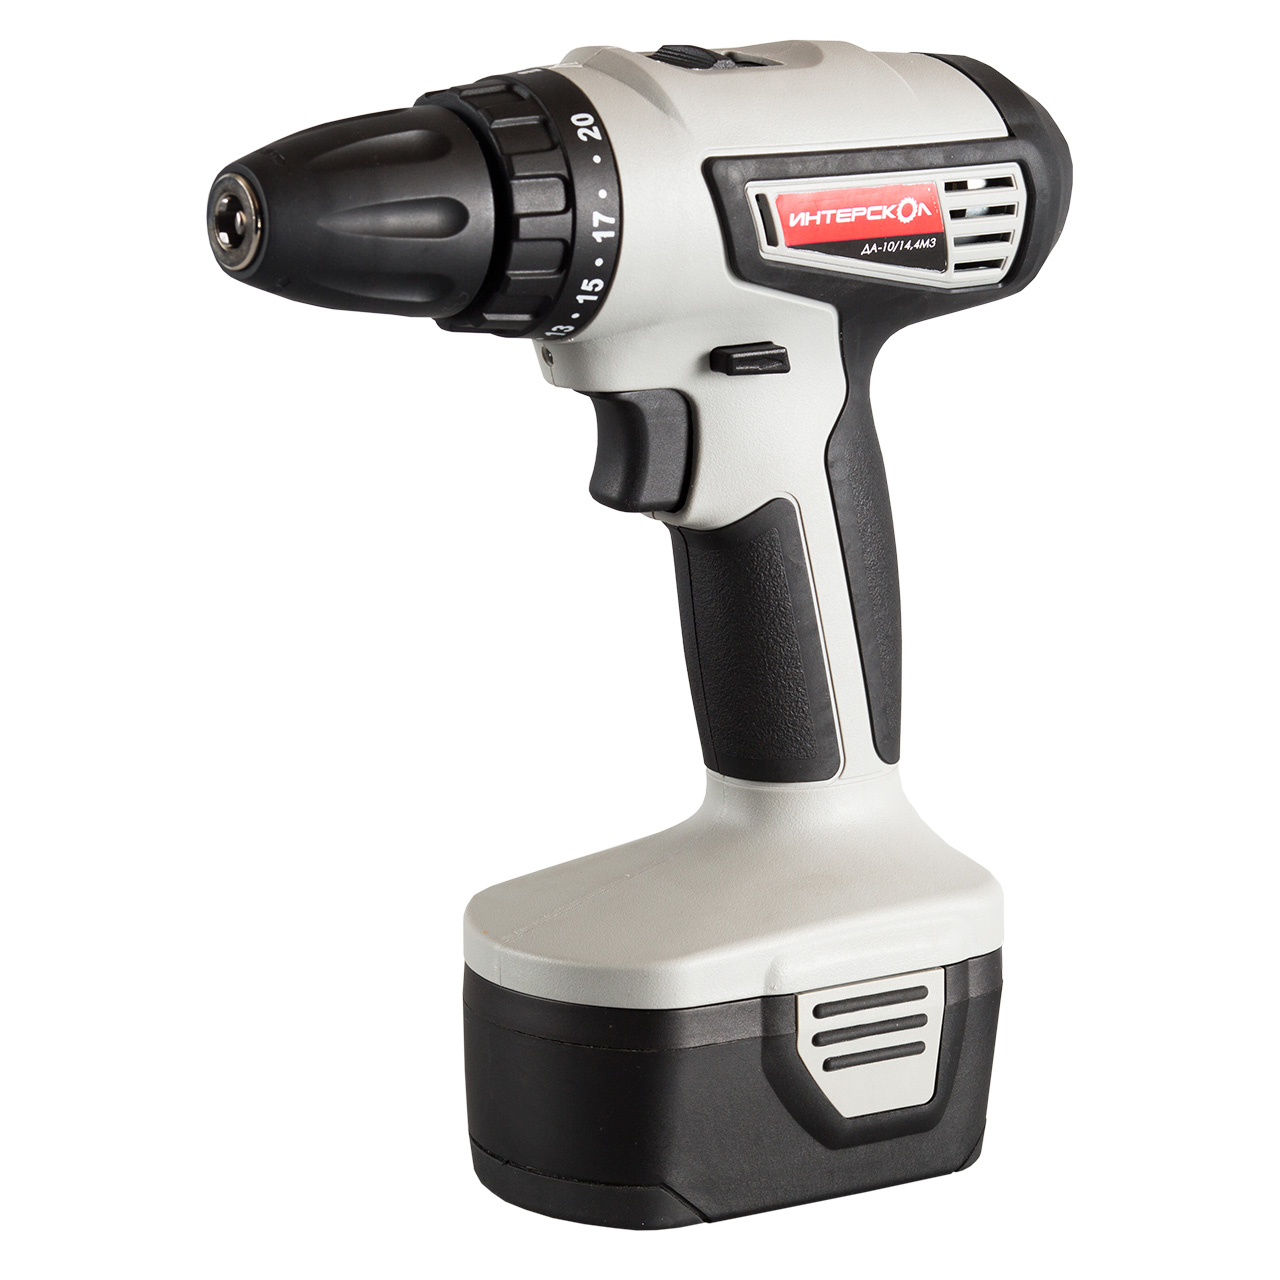 Drill Interskol da-10/10/14 4M3 (speed from 0 to 400 and from 0 to 1400 rpm, 2 speed machine drill sturm bd7045 power 450 w cartridge from 0 to 16mm speed from 280 to 2350 rpm